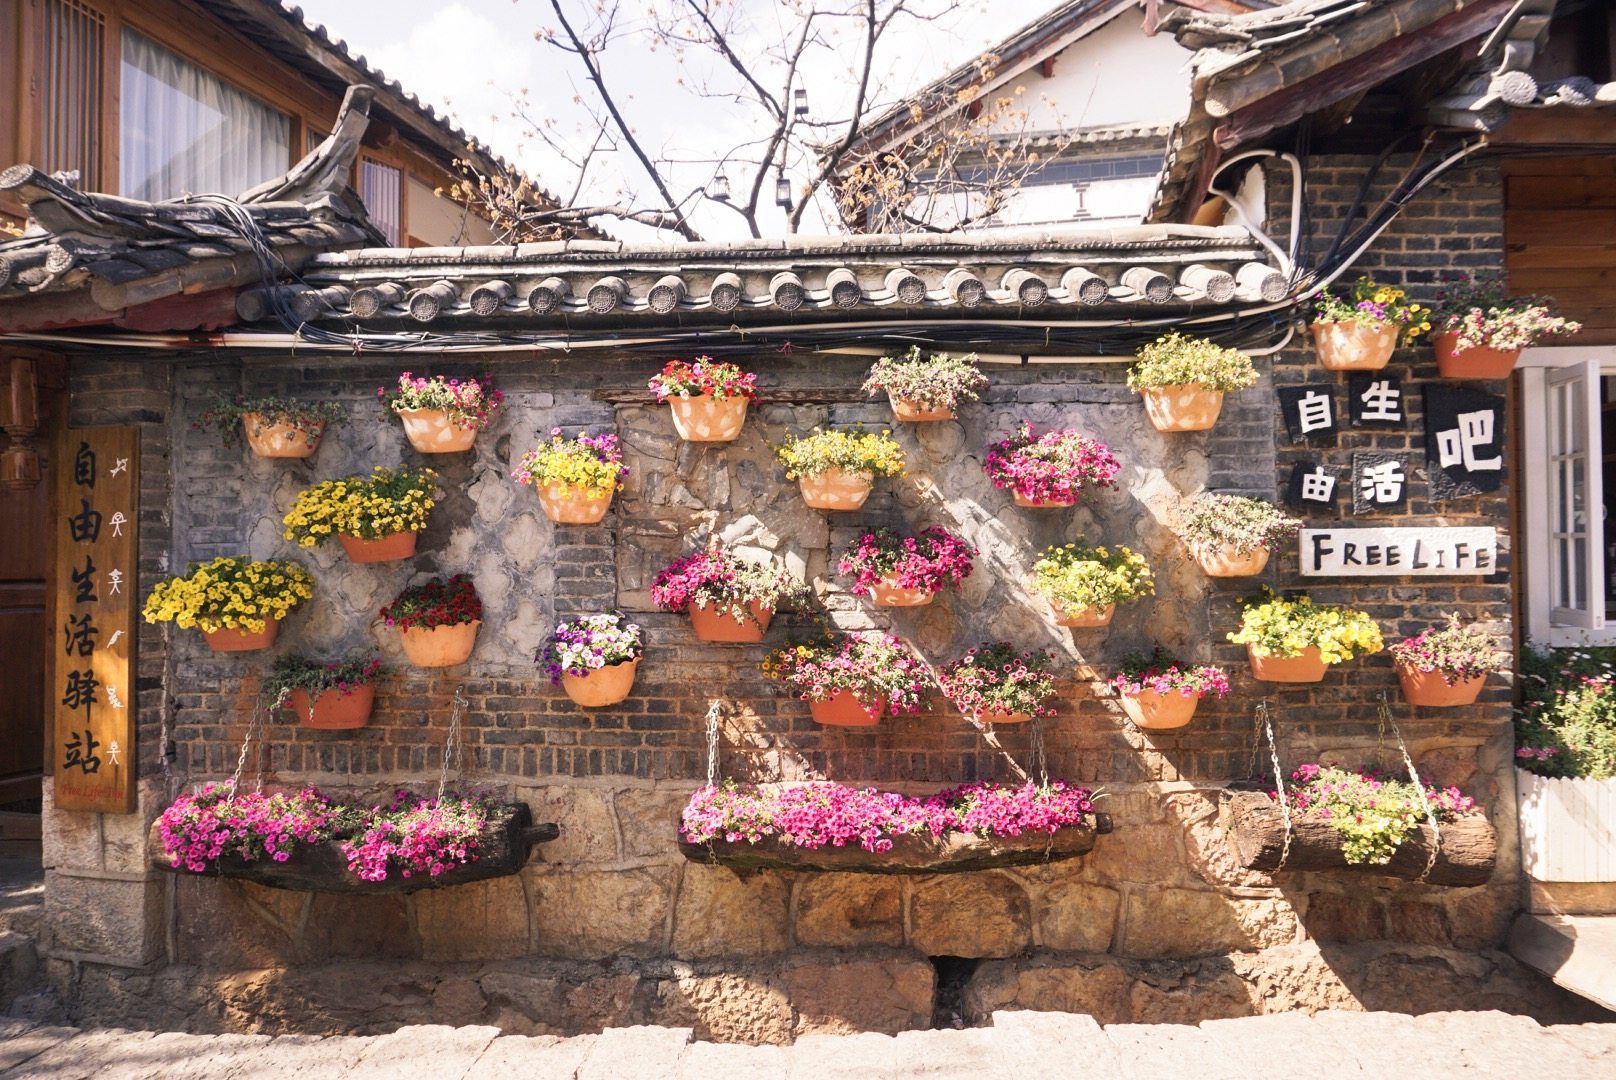 CocoGigiDesign -China-Lijiang 2018_4387.JPG